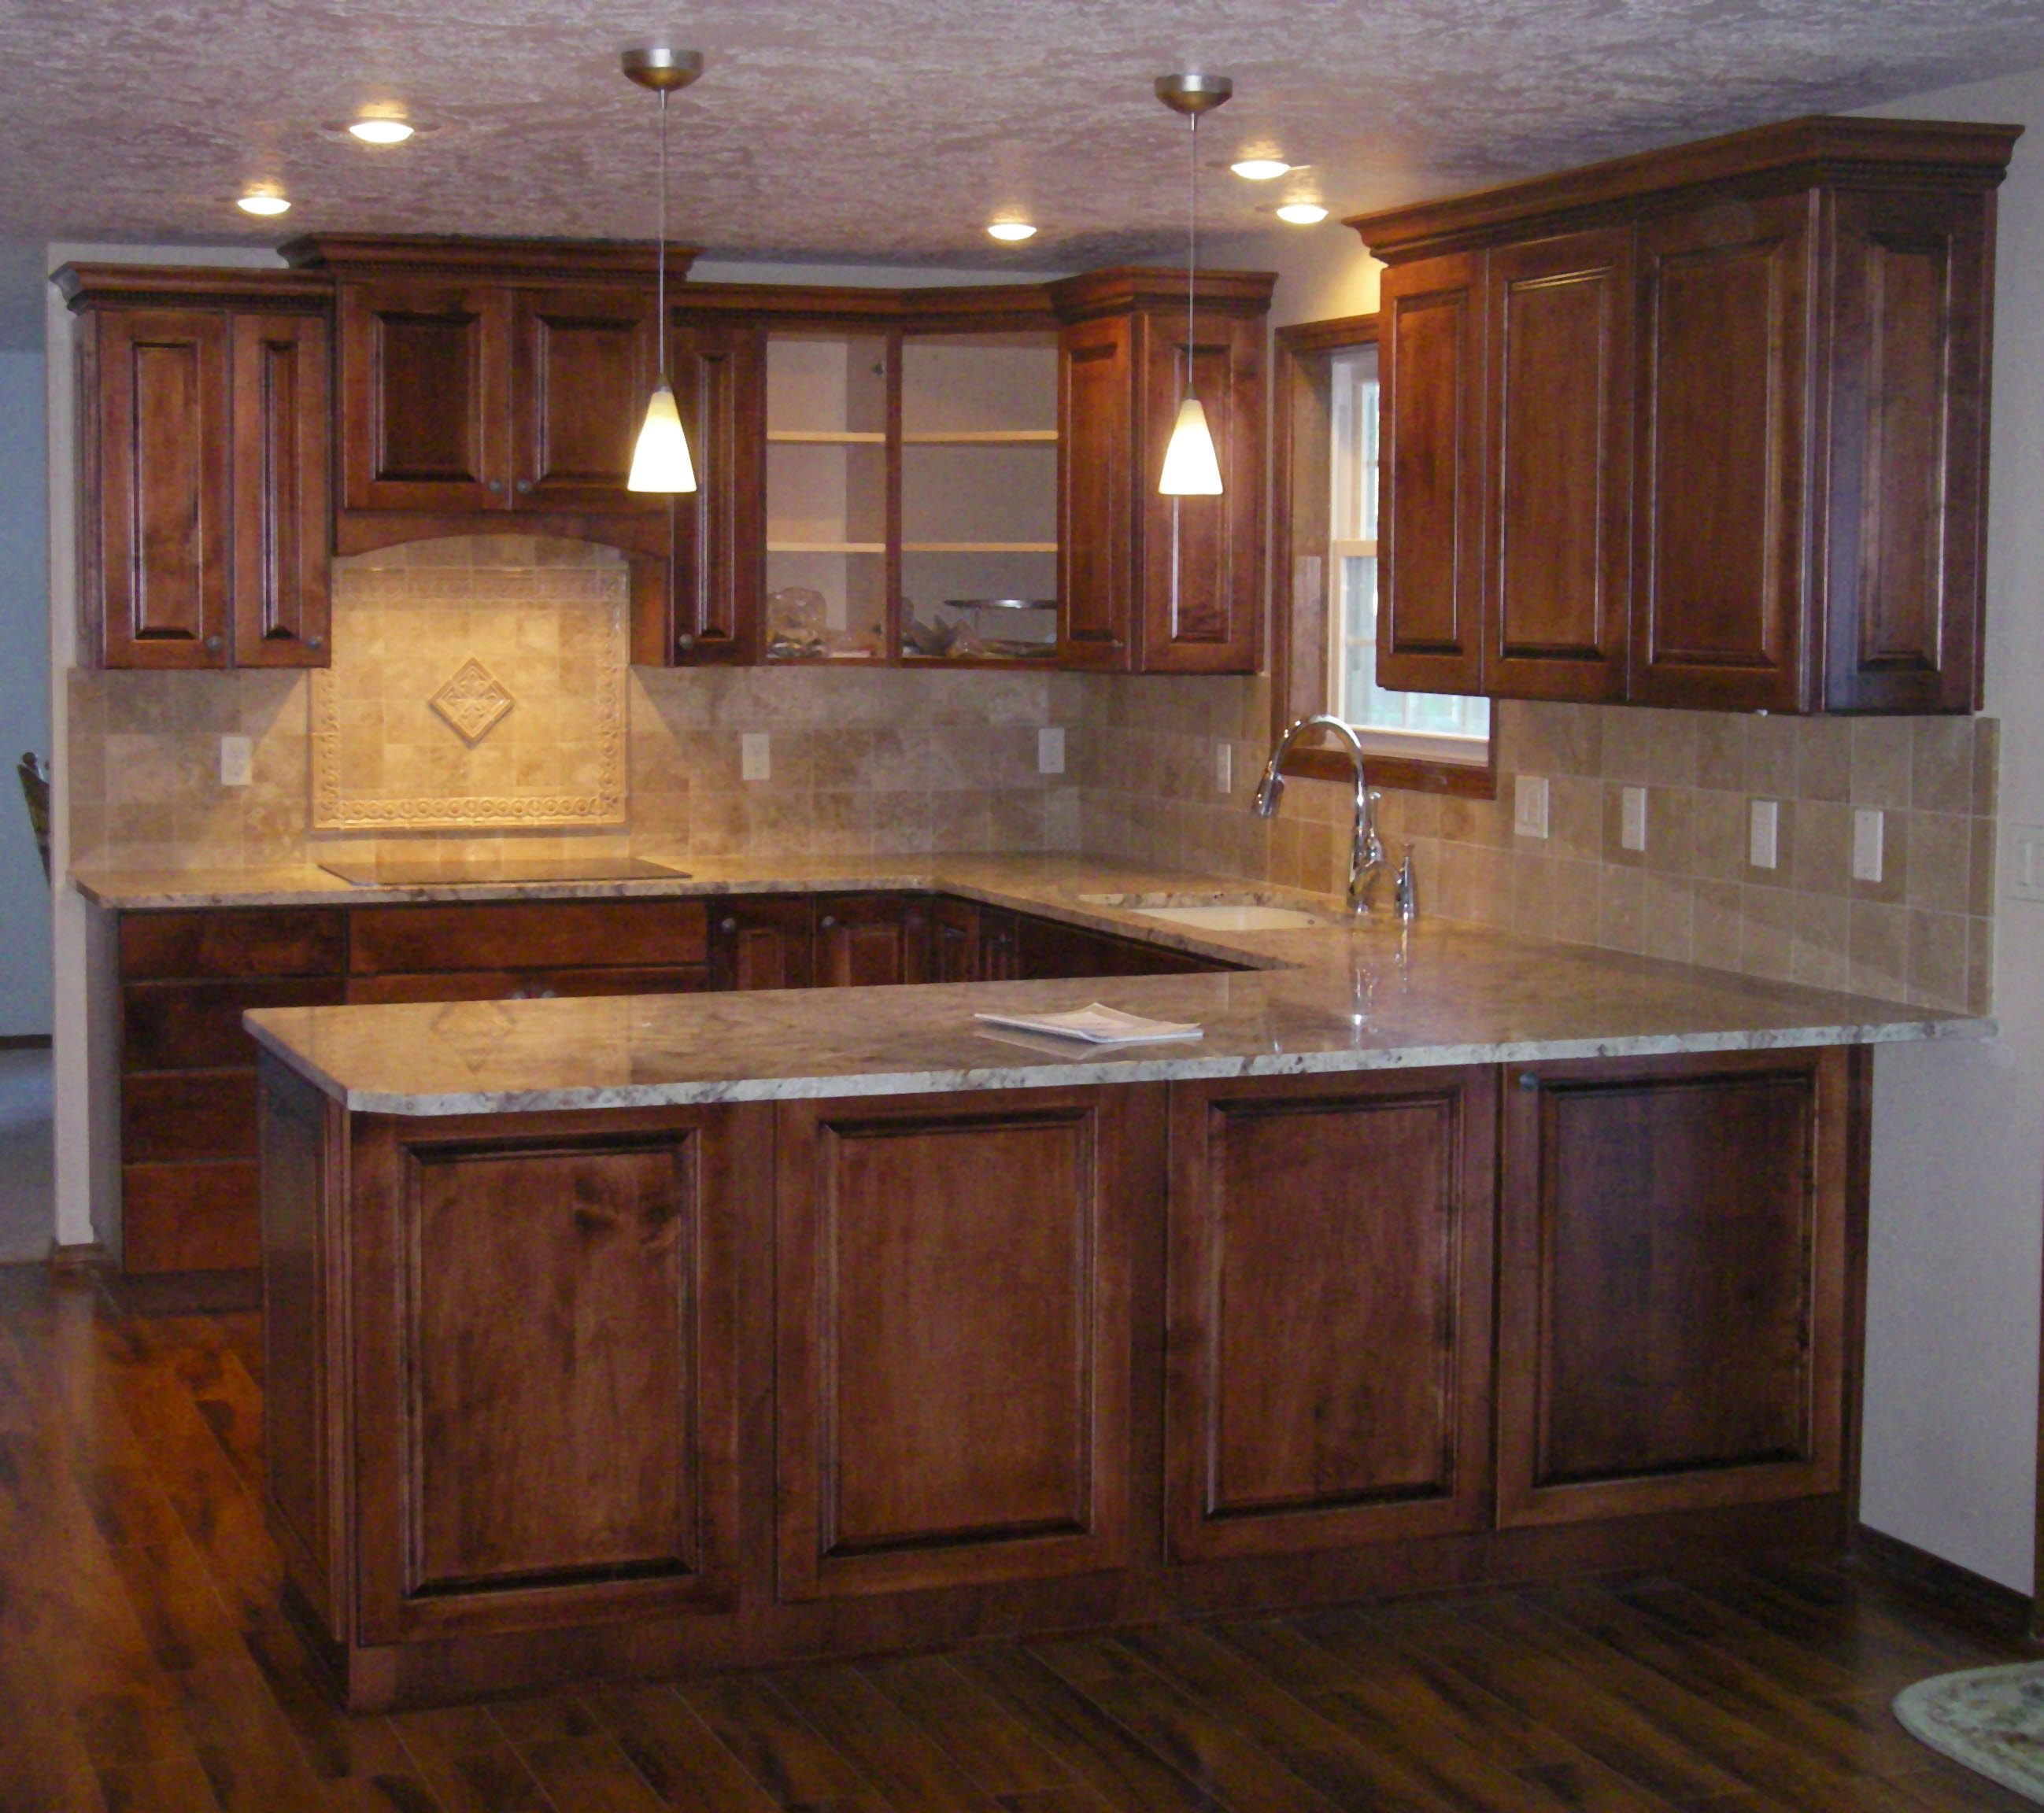 The 17 Best Cherry Kitchen Cabinets With Wood Floors And Granite Countertops Tags Cherry Kitchen Cabinet Design Cherry Cabinets Kitchen New Kitchen Cabinets